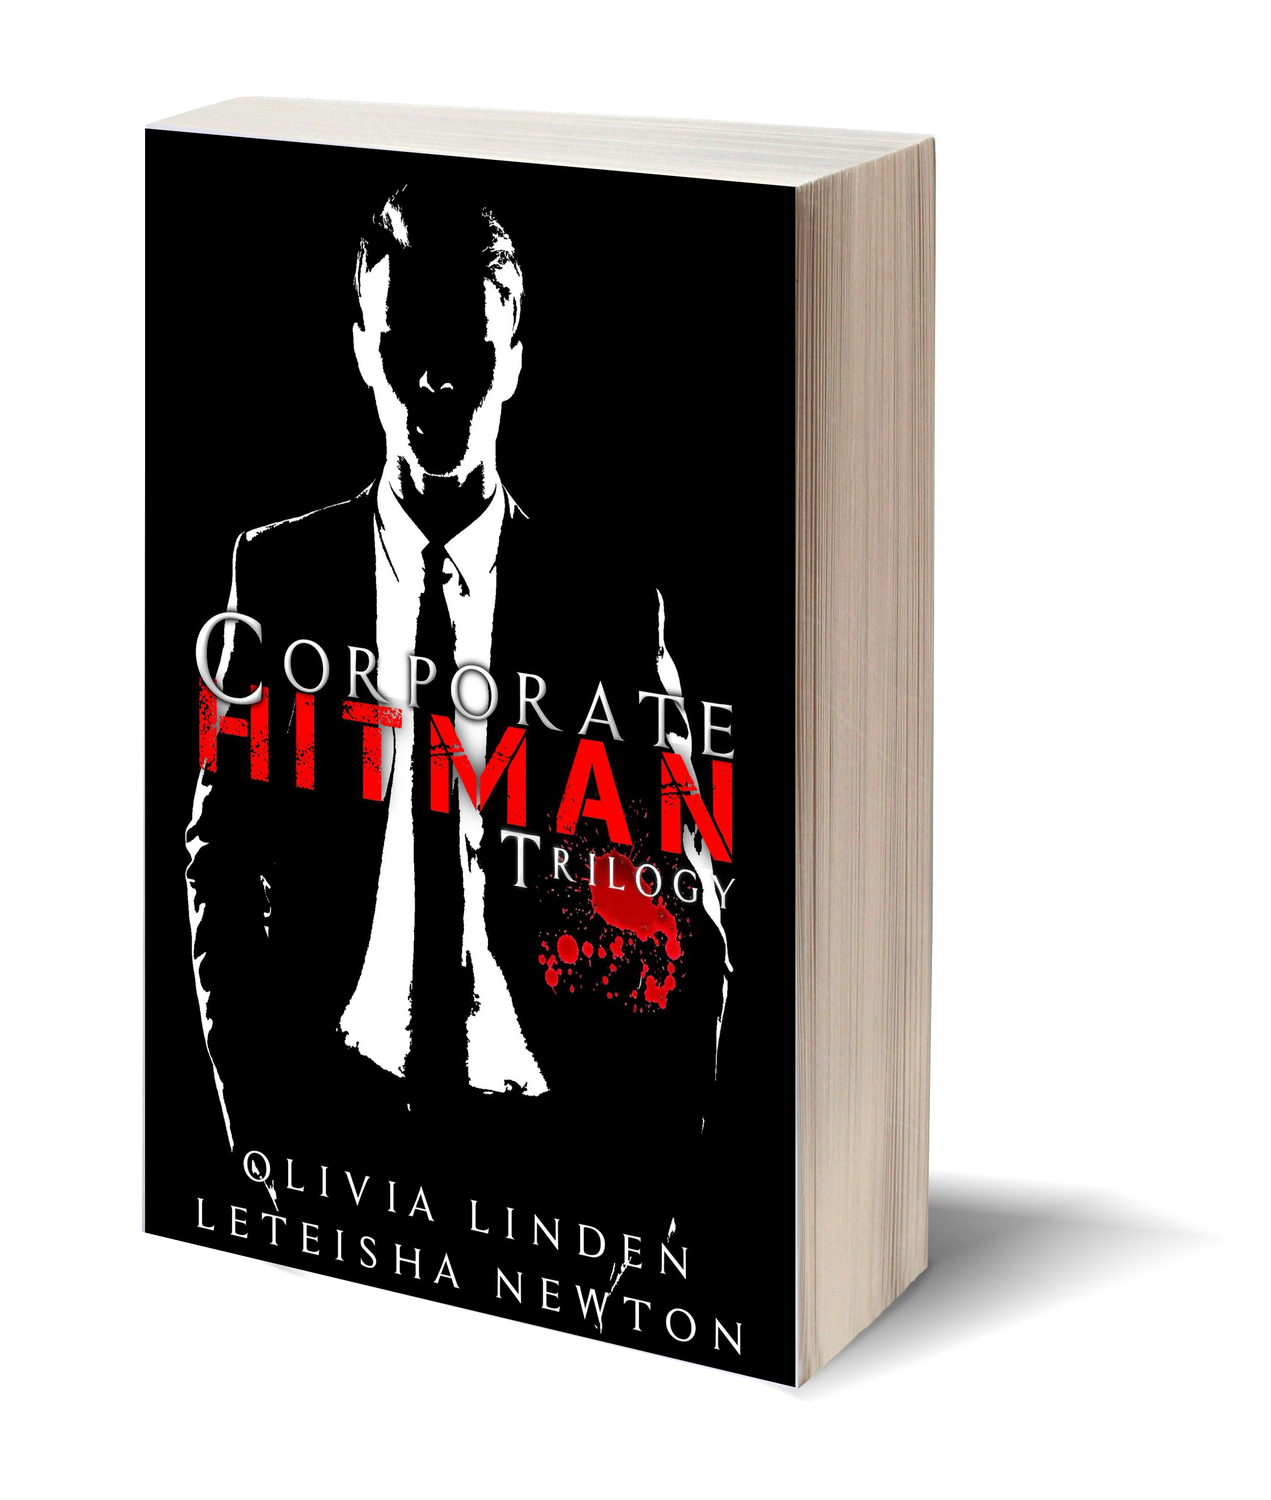 Corporate Hitman Trilogy